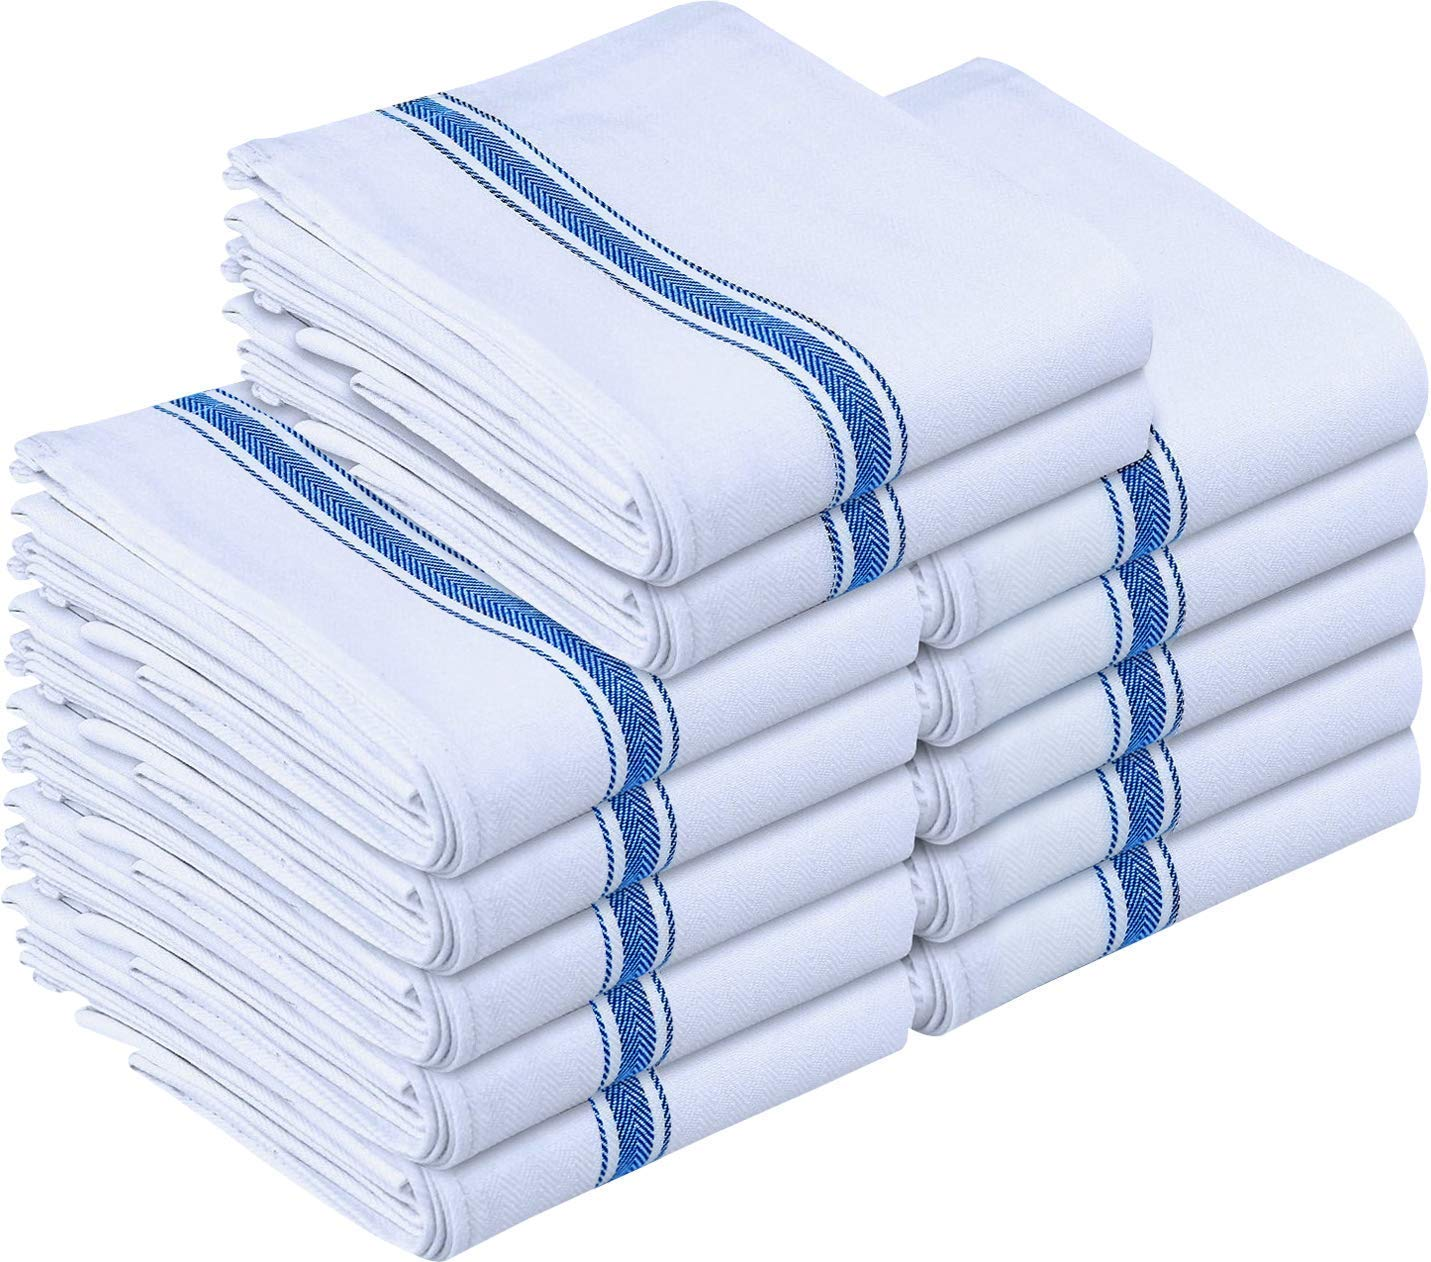 Utopia Towels 12 Pack Dish Towels 15 x 25 inches White Kitchen Towels, bar Towels and Tea Towels